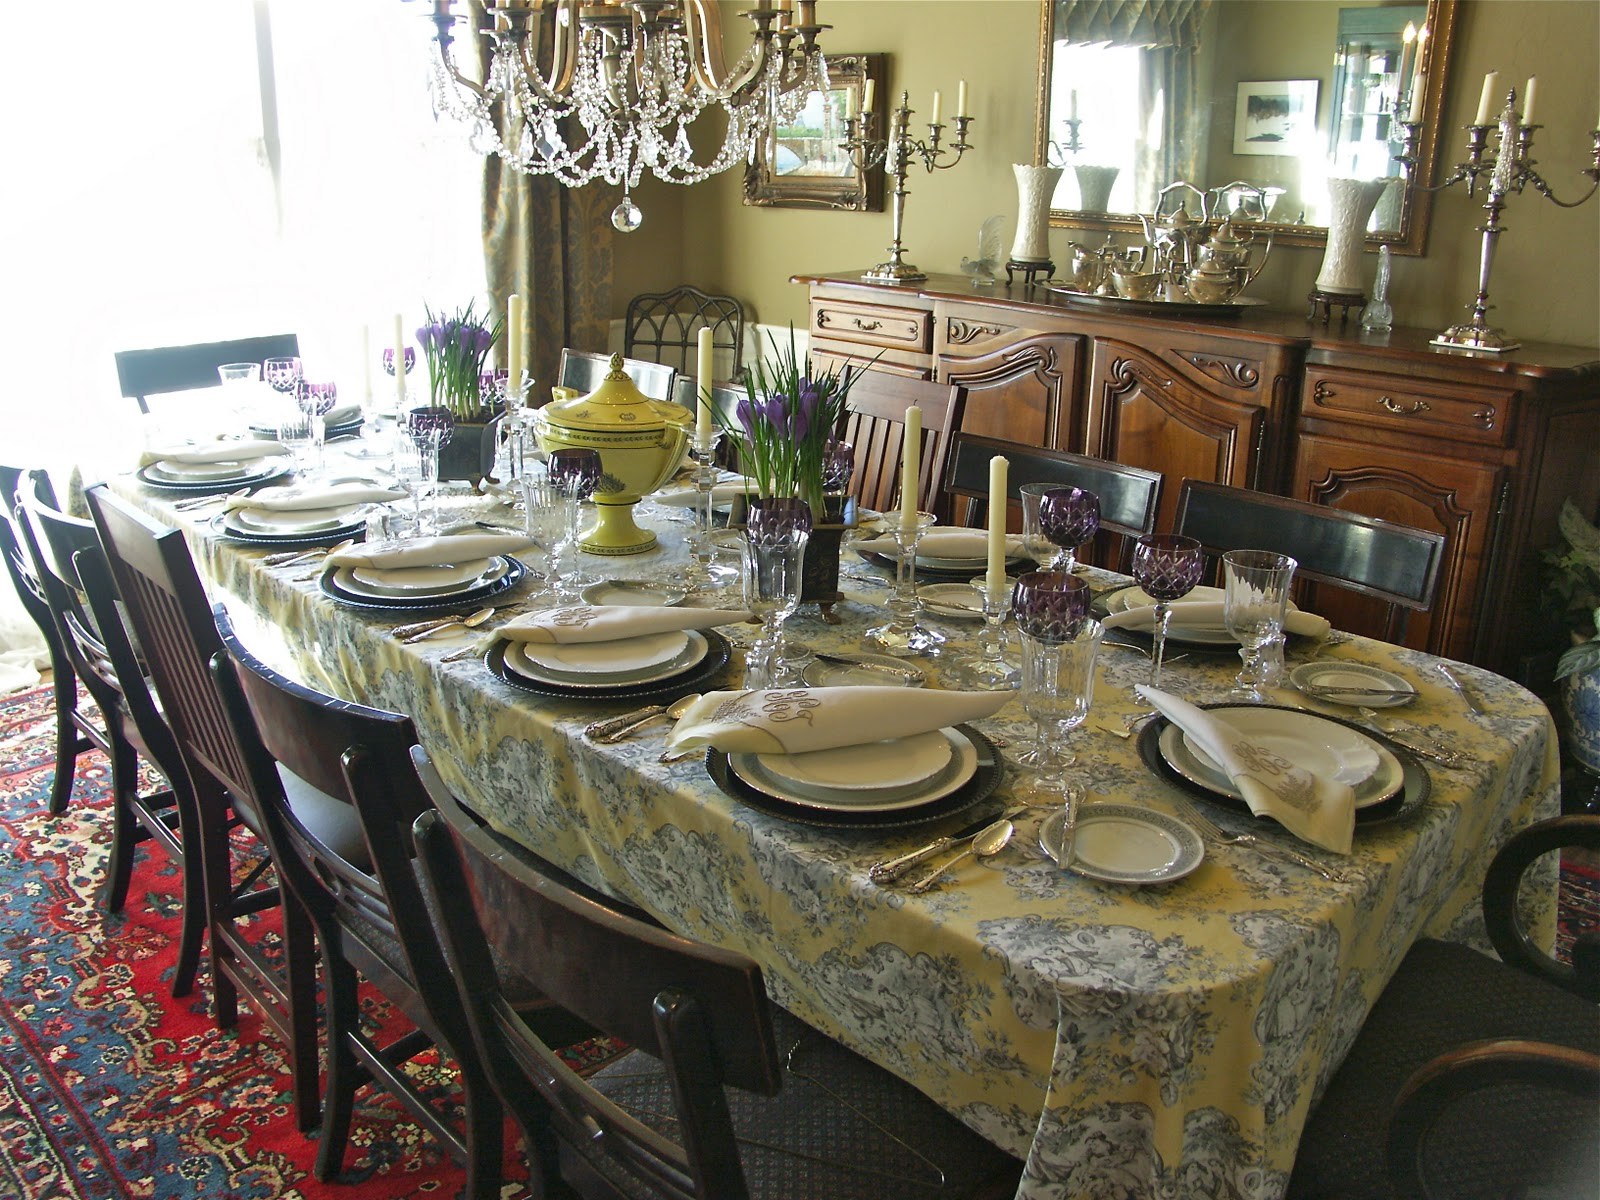 Superb My Inspiration For Todayu0027s Table Was The Yellow, Cream, And Gray Toile  Tablecloth. I Bought A Lot Of Them On EBay This Fall, Primarily To Use On  The Back ...